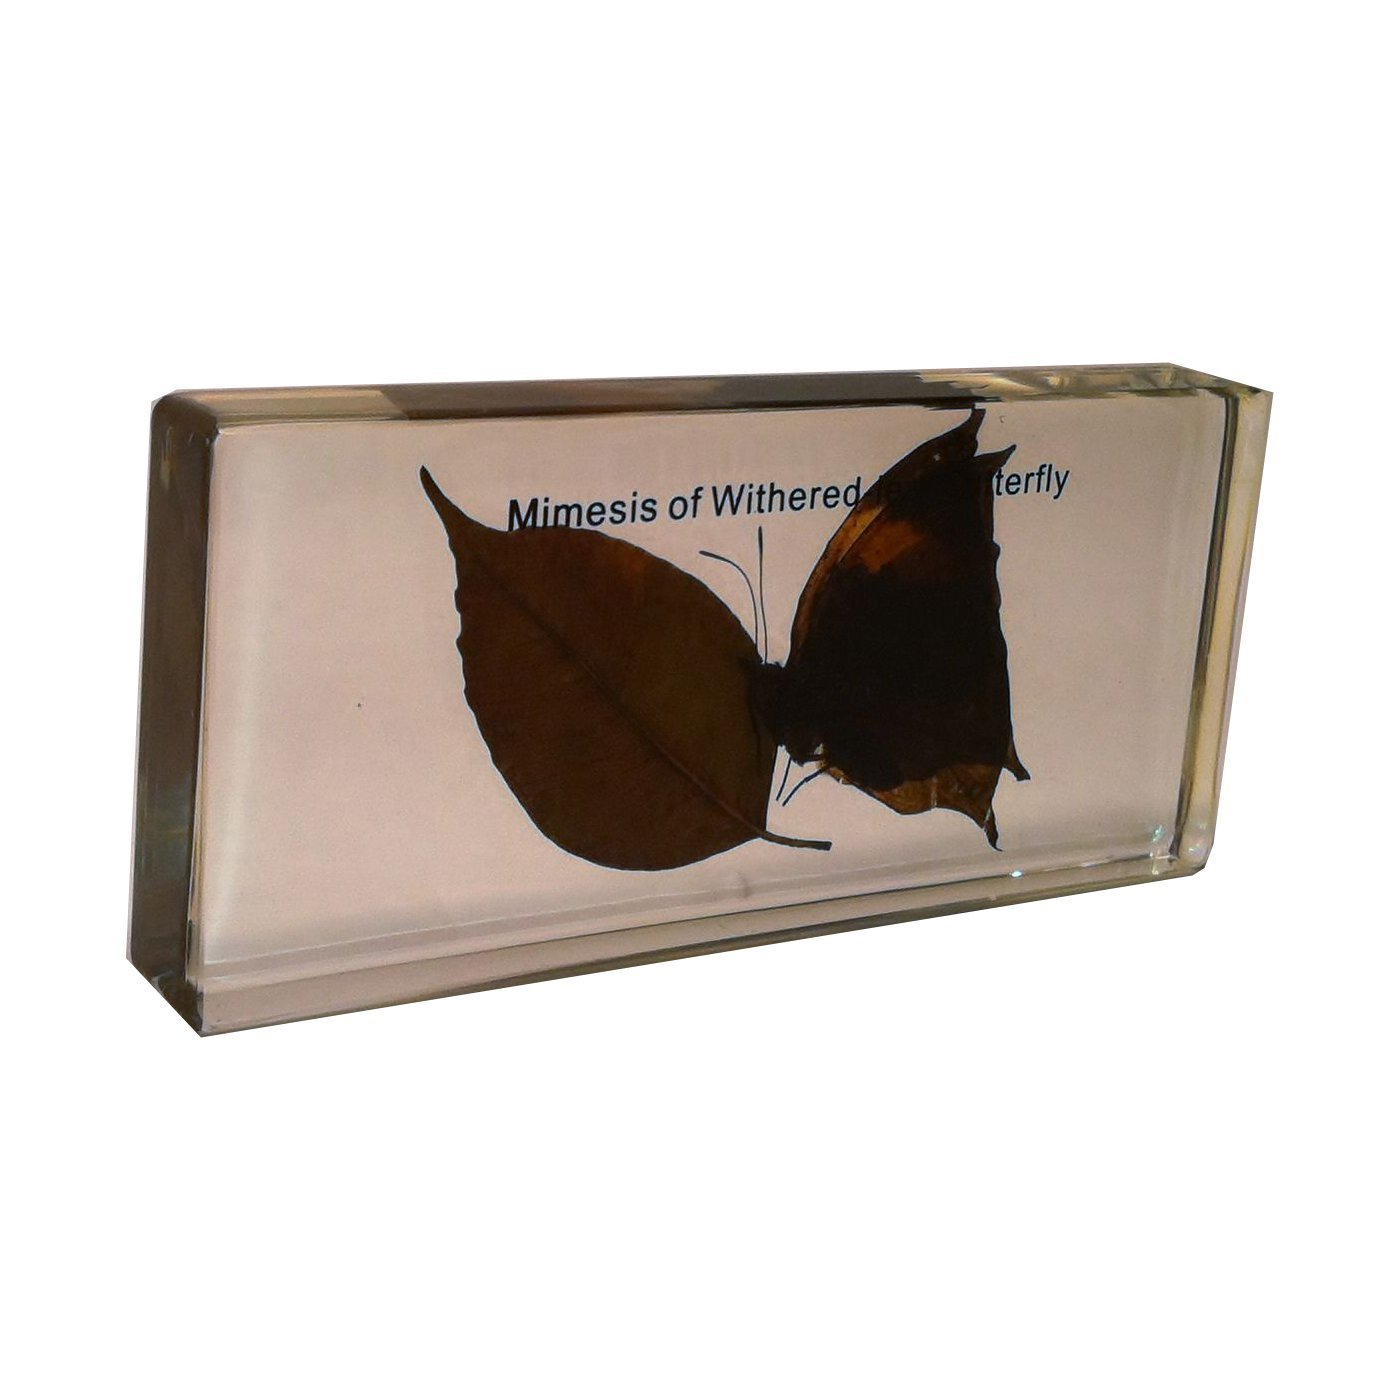 Mimesis of a Withered-leaf Butterfly